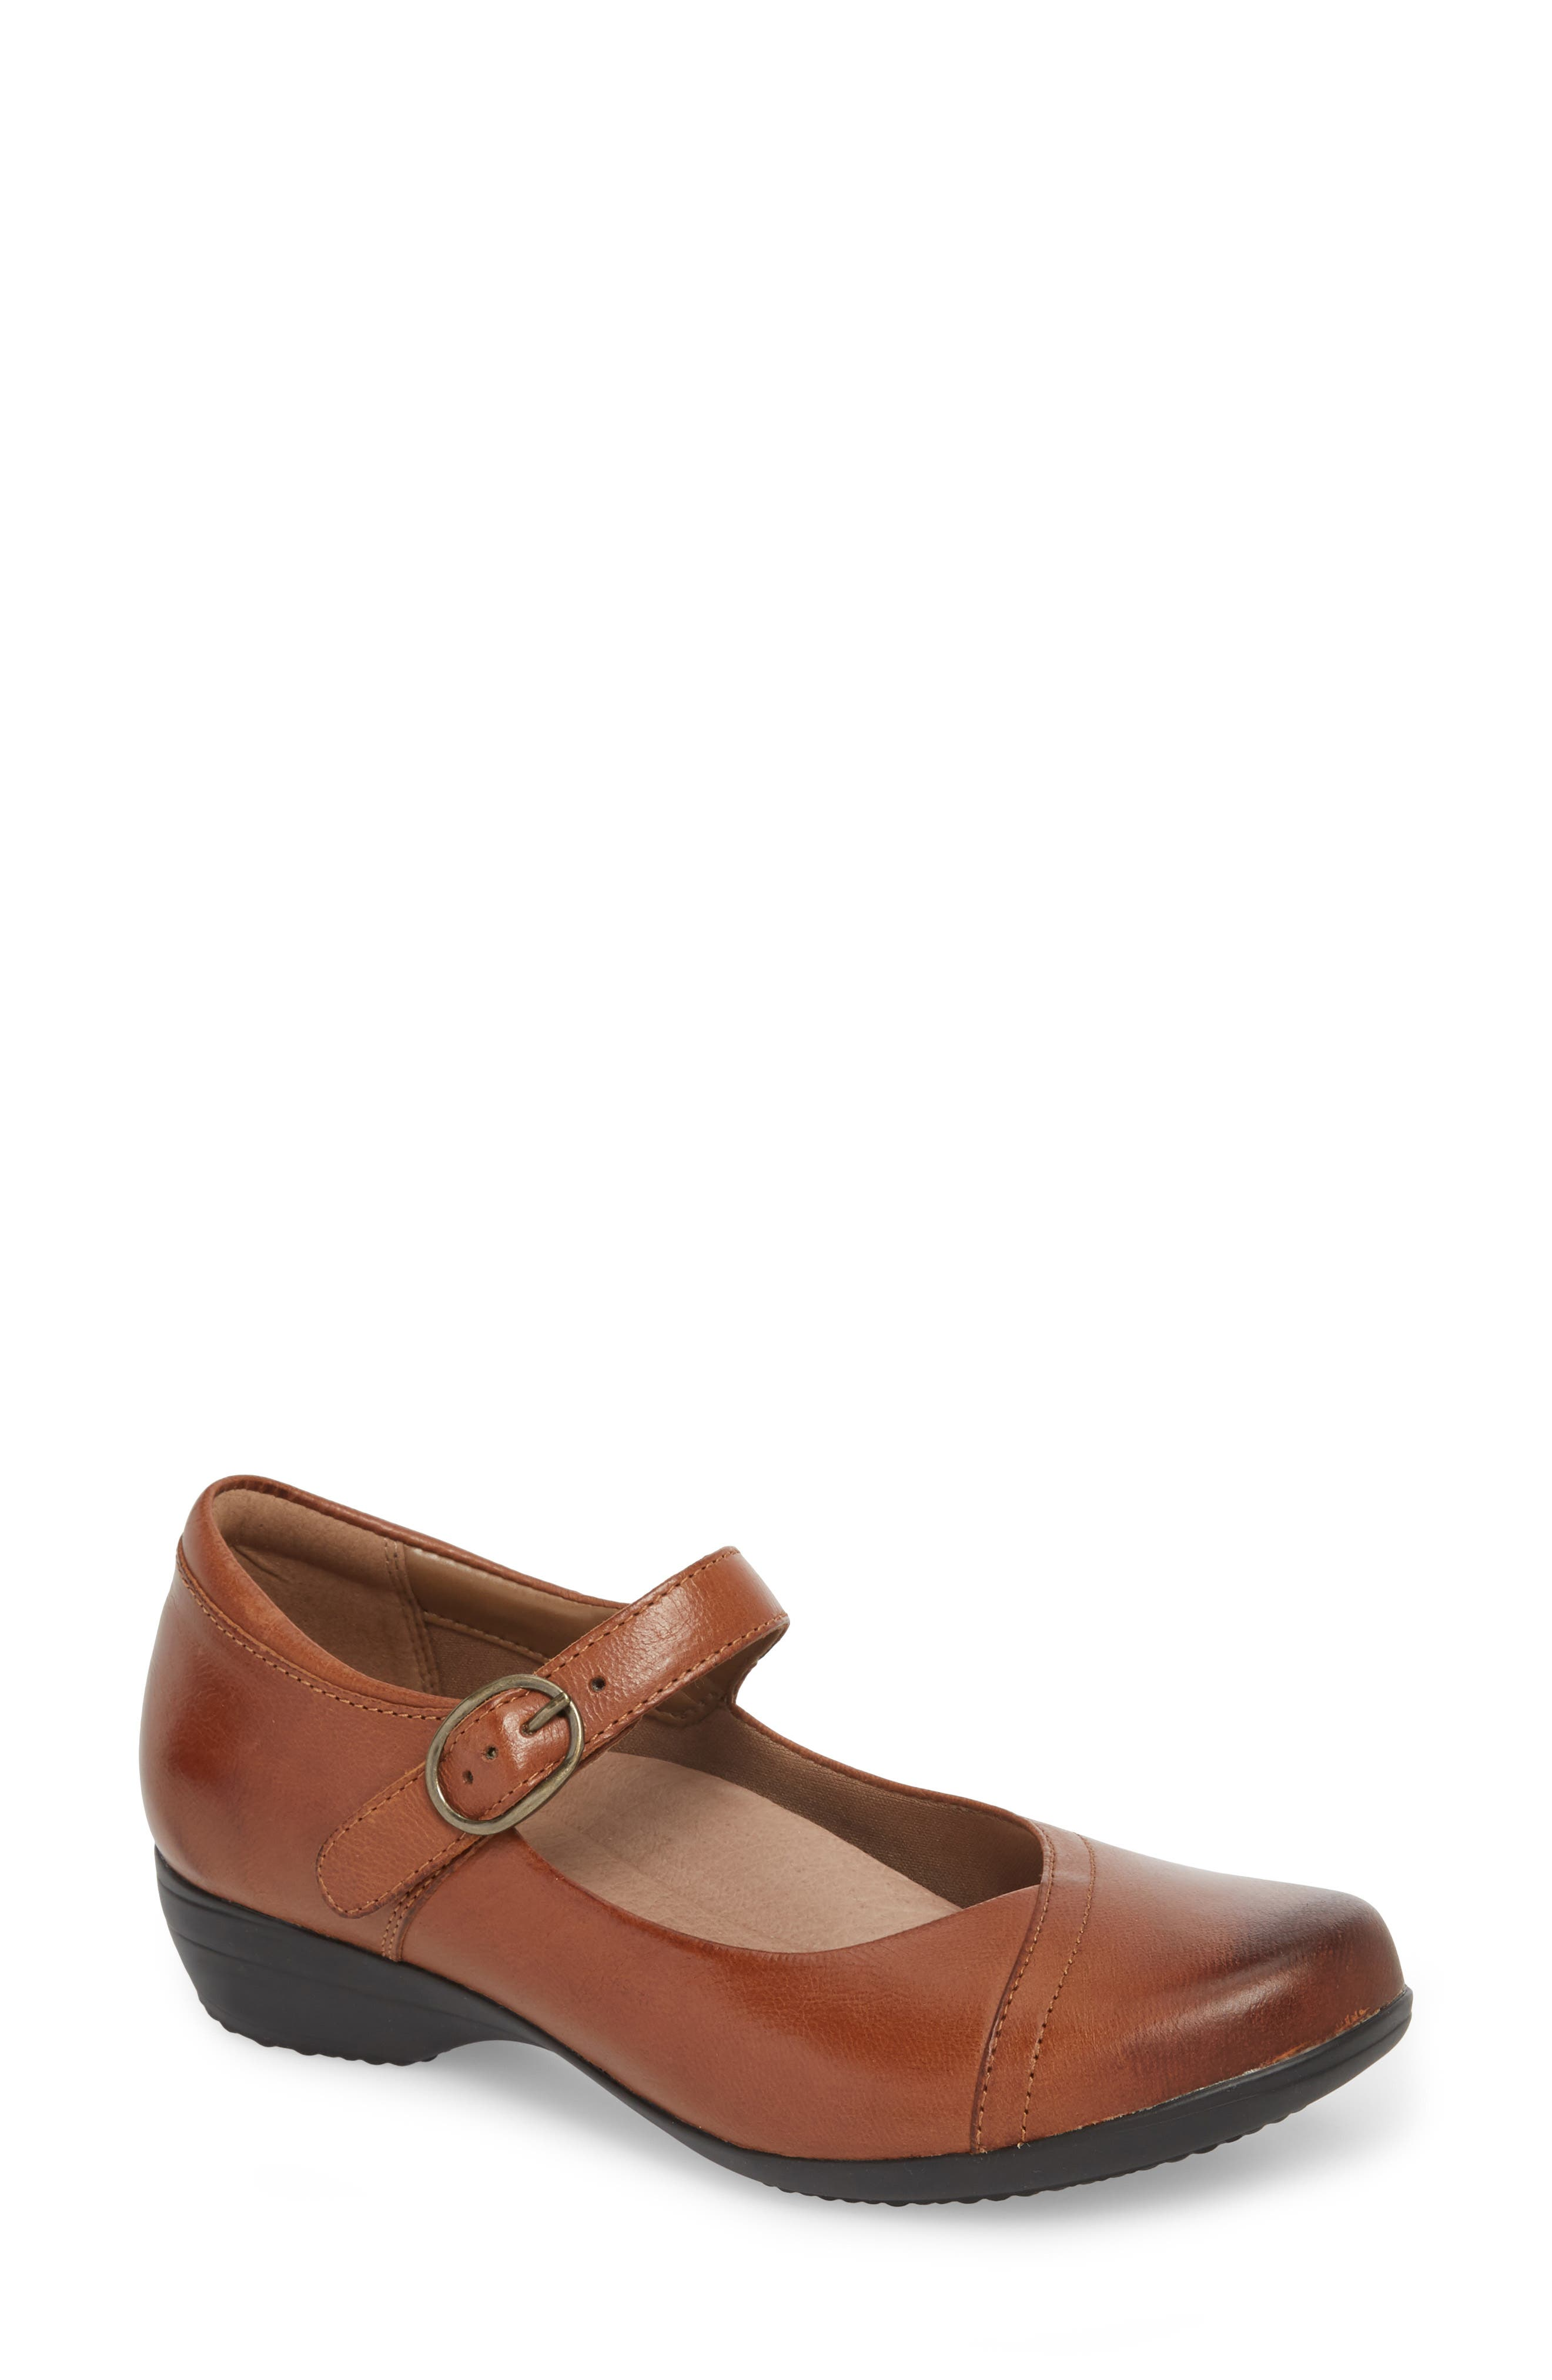 Fawna Mary Jane Flat,                             Main thumbnail 1, color,                             Chestnut Leather